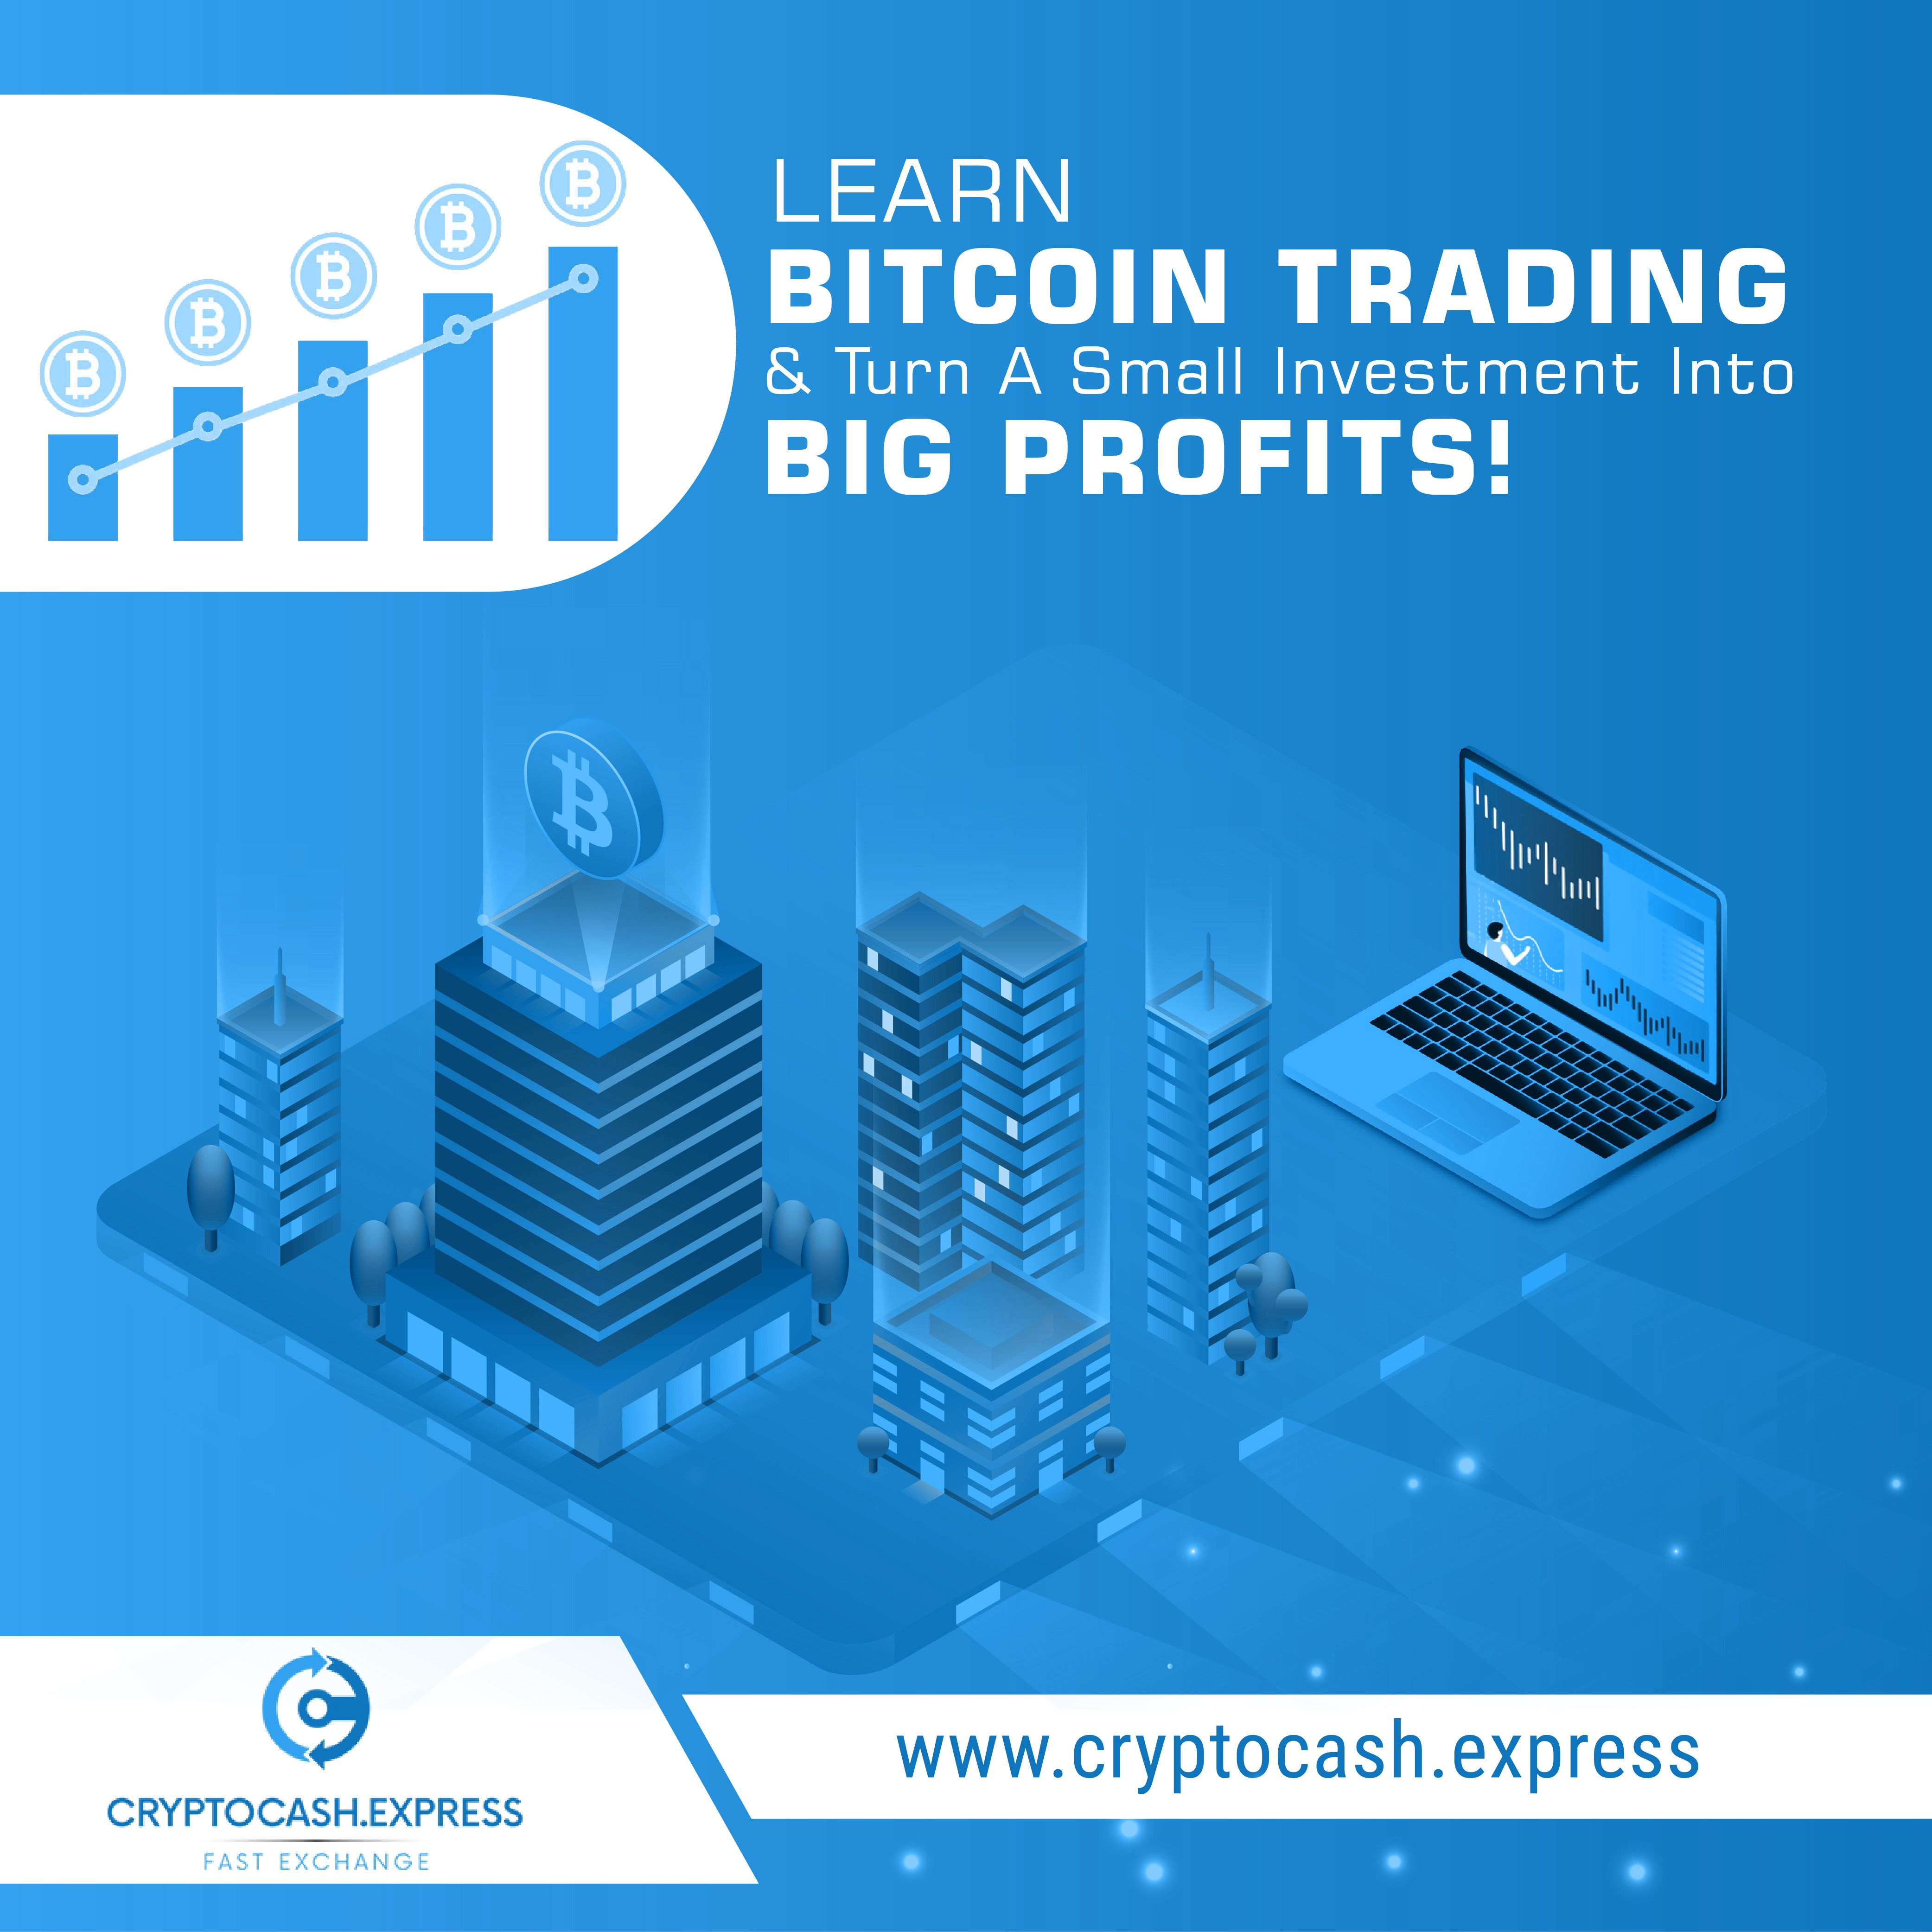 Want to make profits fast? Then Bitcoin trading is for you